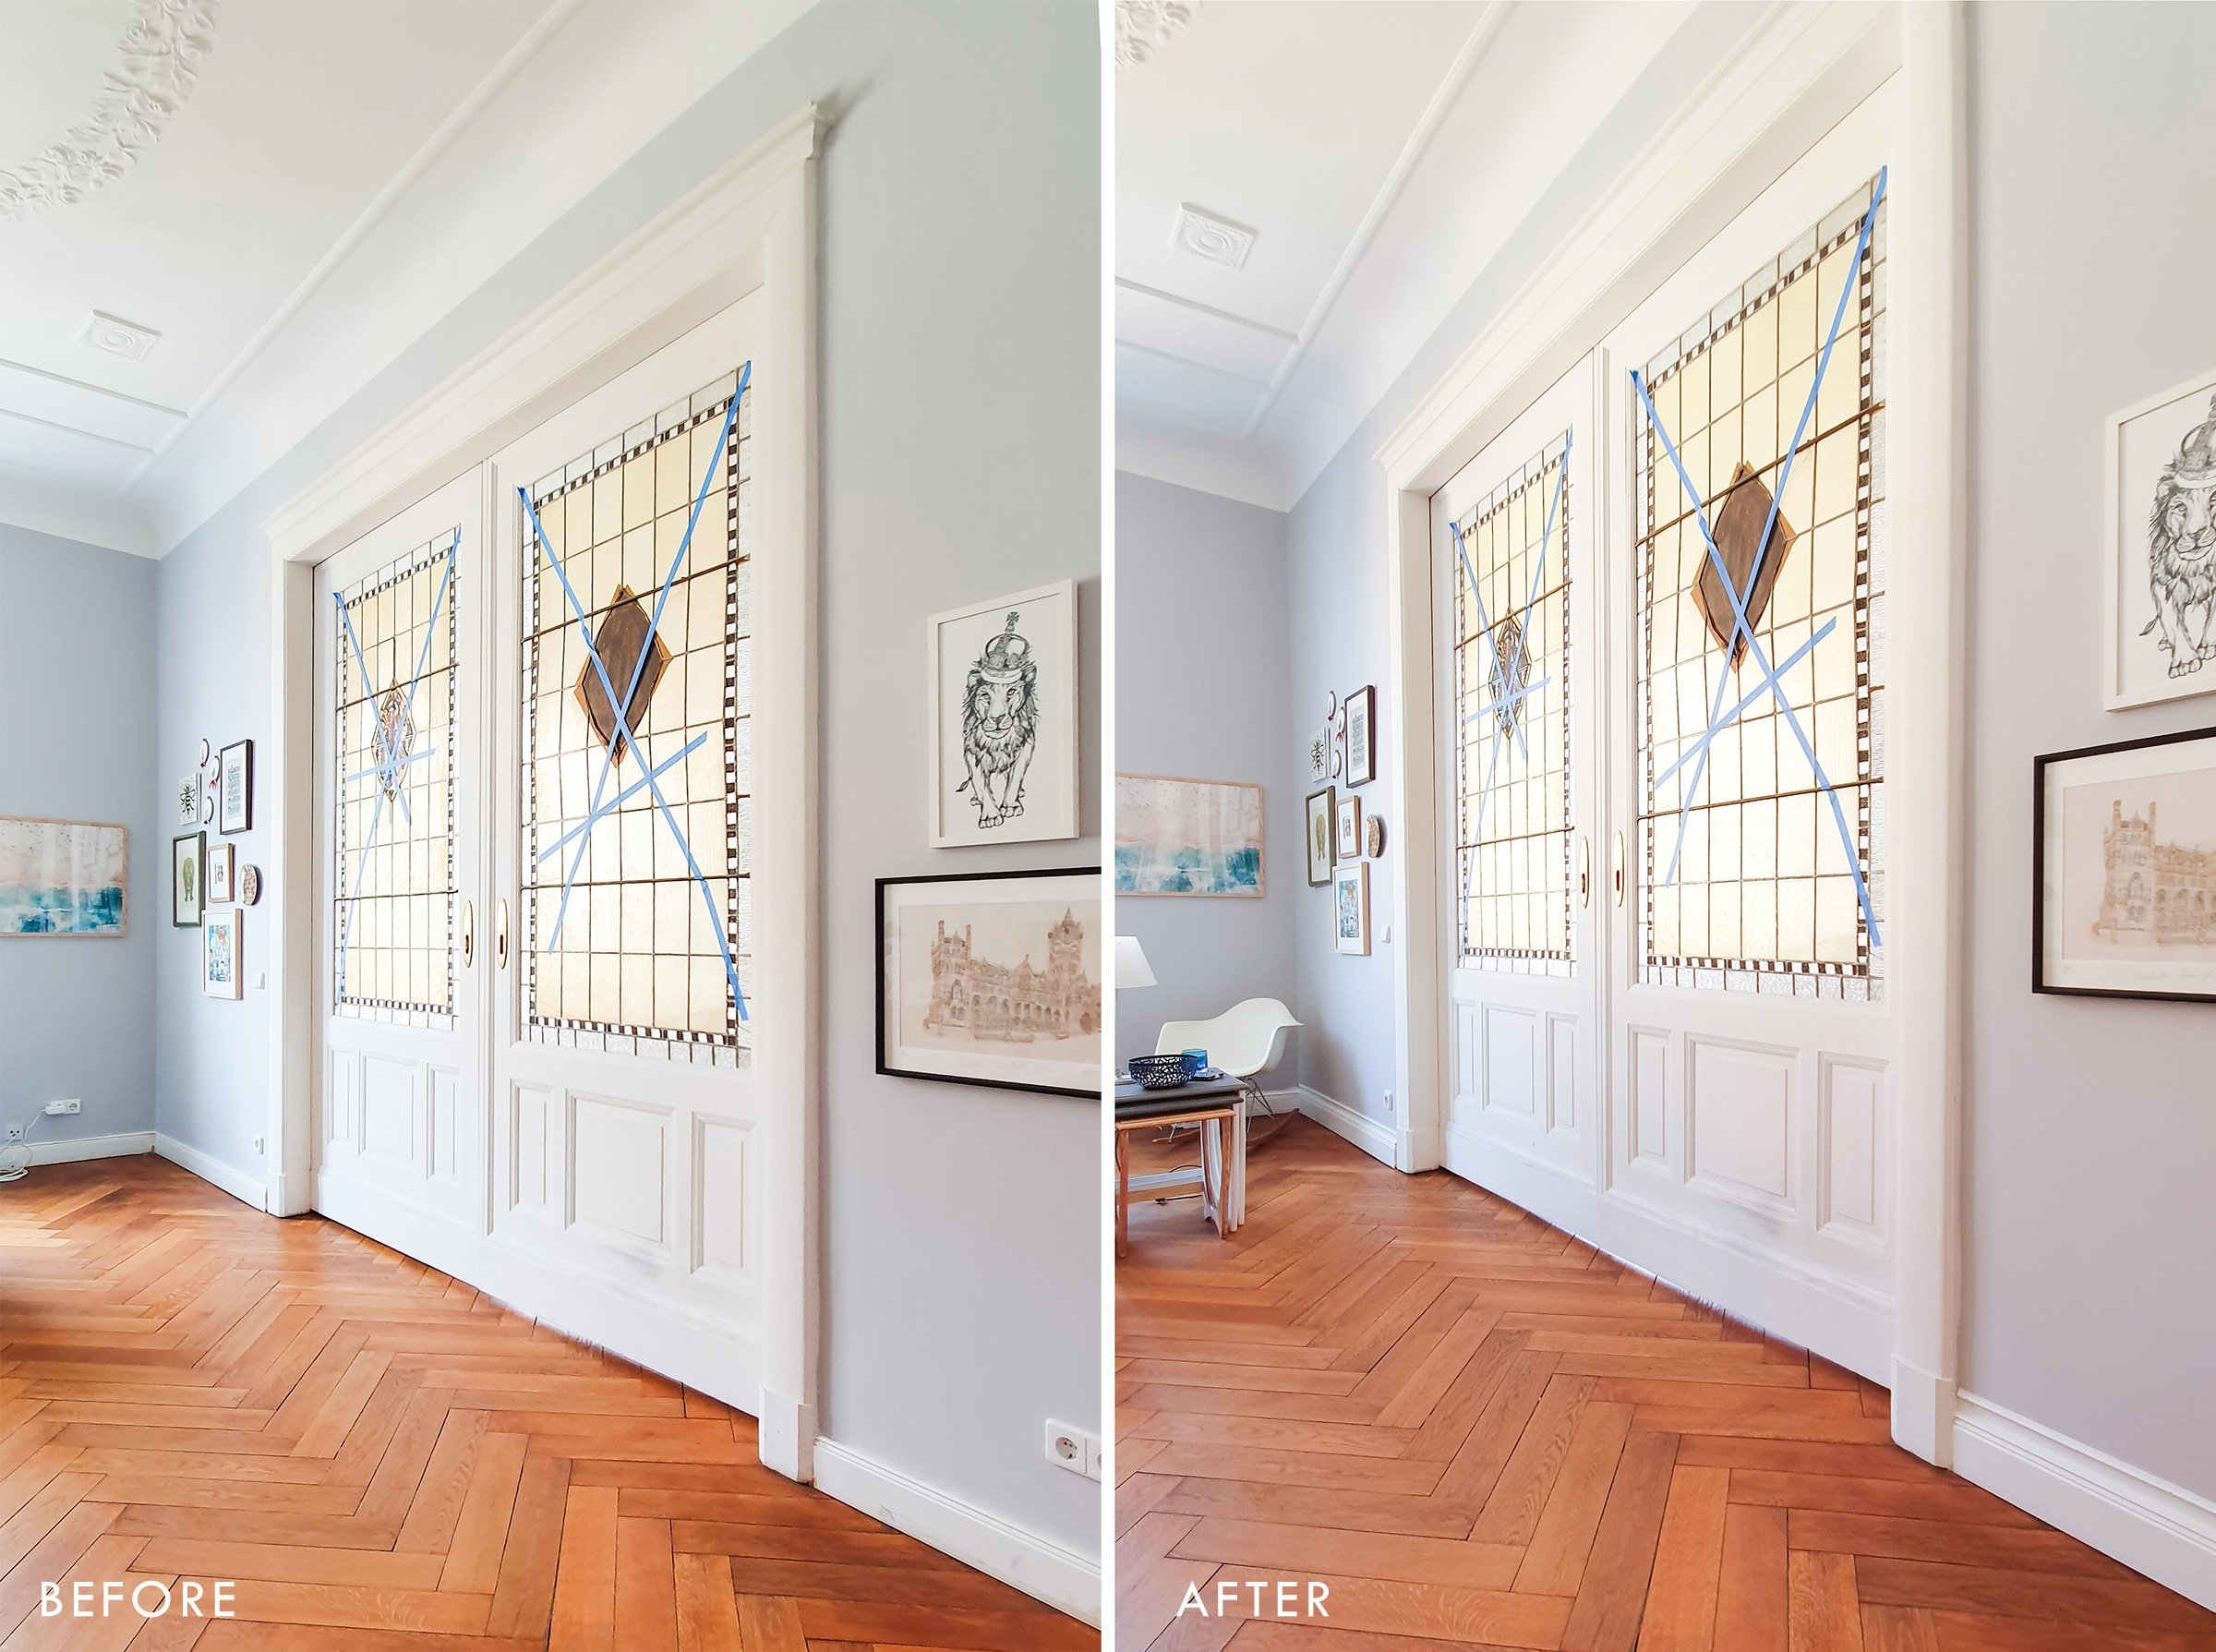 How To Choose Skirting Boards For Your Home | Little House On The Corner